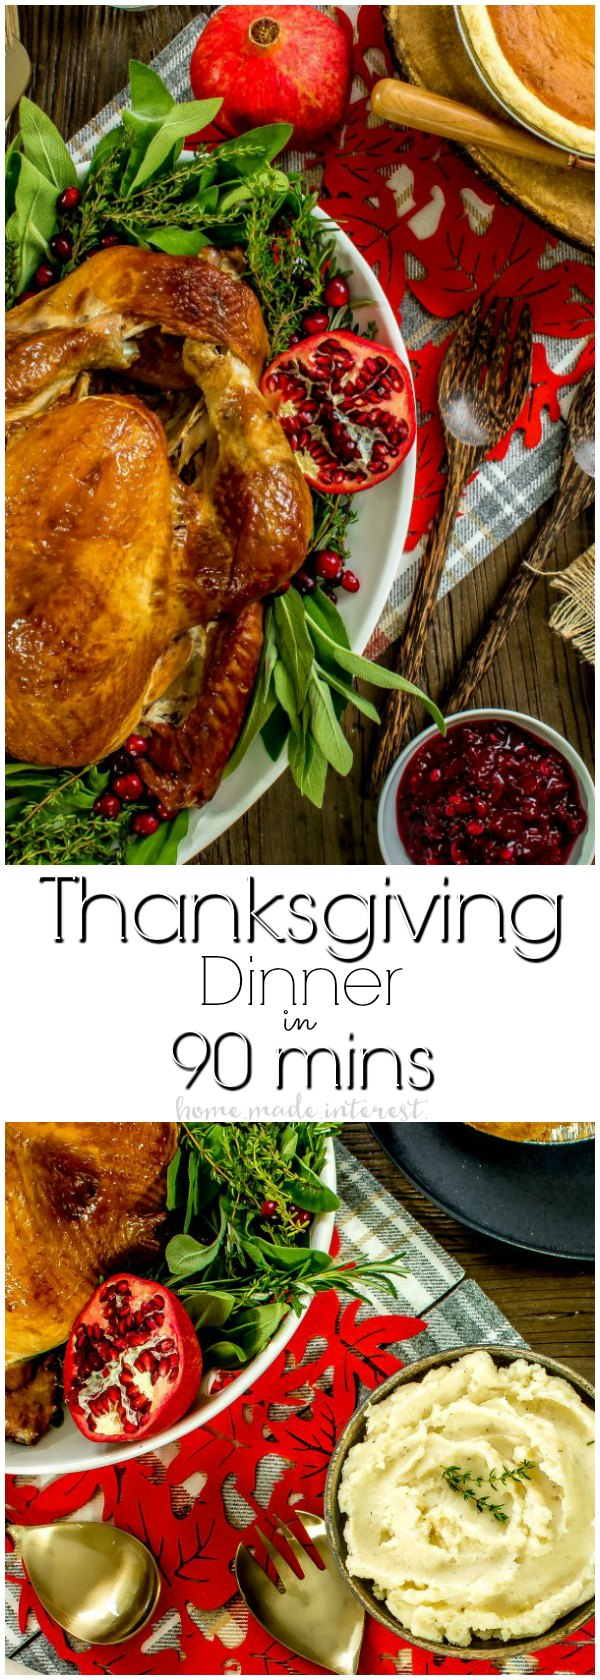 This delicious Thanksgiving dinner can be made in 90 minutes. Make Thanksgiving a little easier with a Thanksgiving dinner delivered straight to your front door! Thanksgiving side dishes, a beautiful golden brown, moist turkey, and pumpkin and apple pie make this Thanksgiving meal kit the easy way to host Thanksgiving!